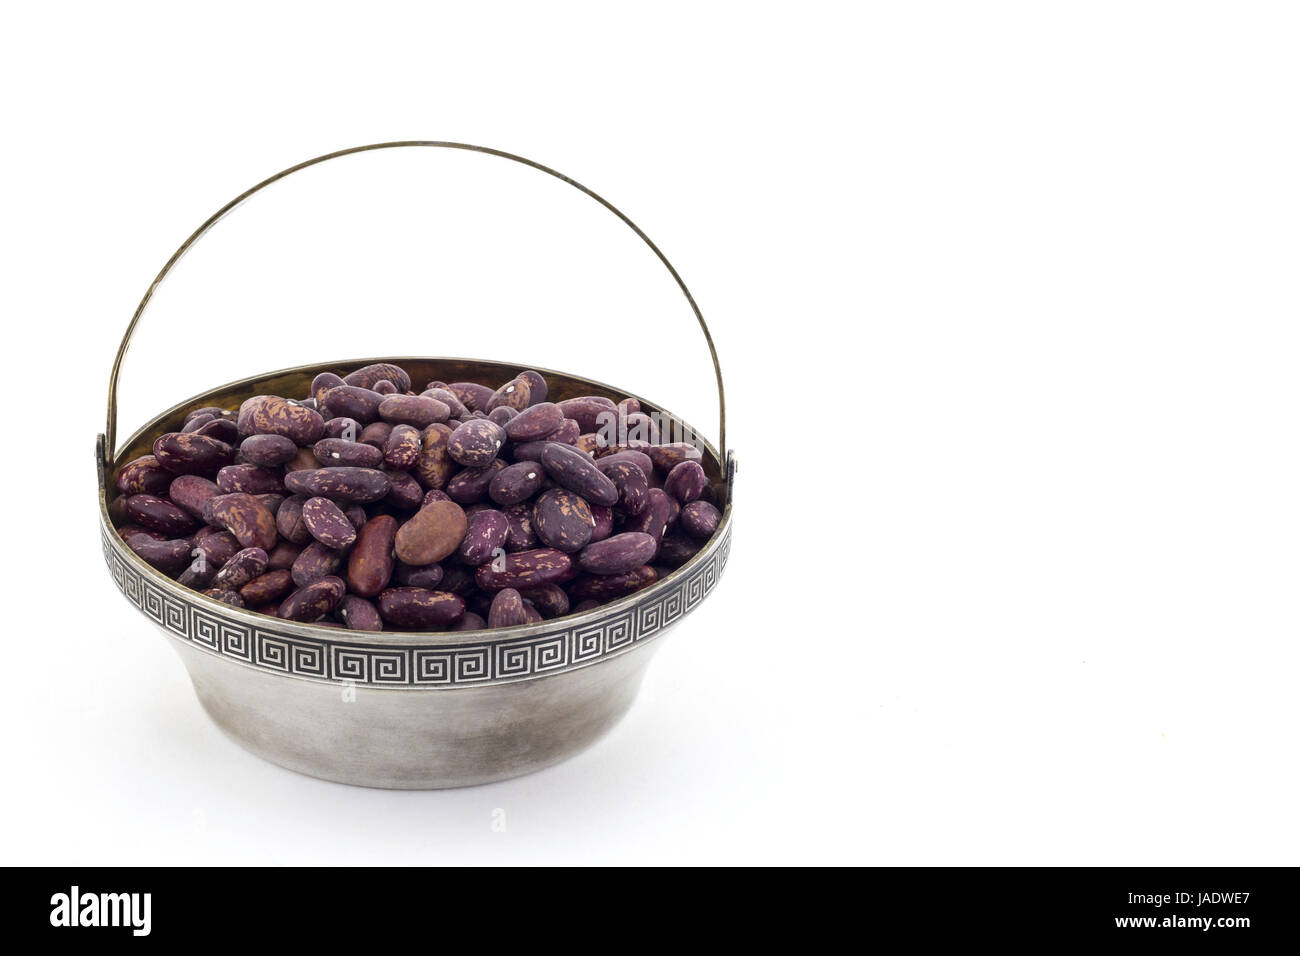 Red beans in antique silver bowl isolated on white background Stock Photo